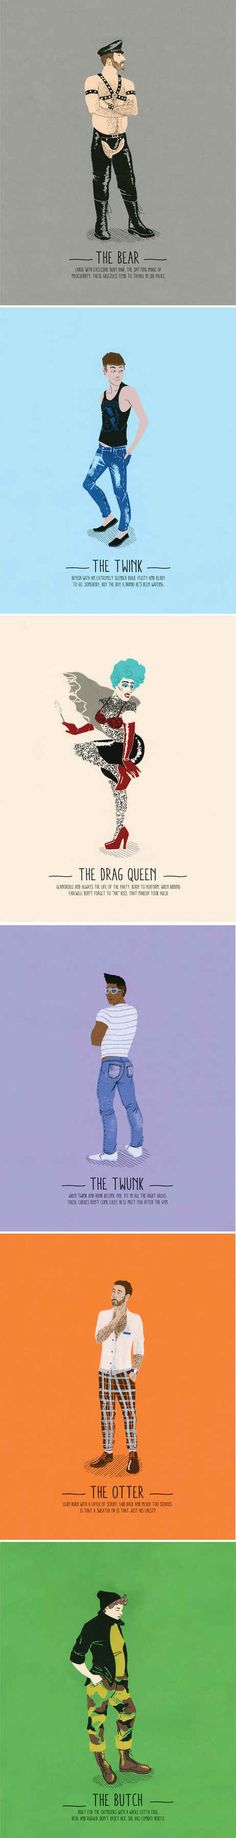 """""""A Guide to Gay Stereotypes"""" Poster Series 